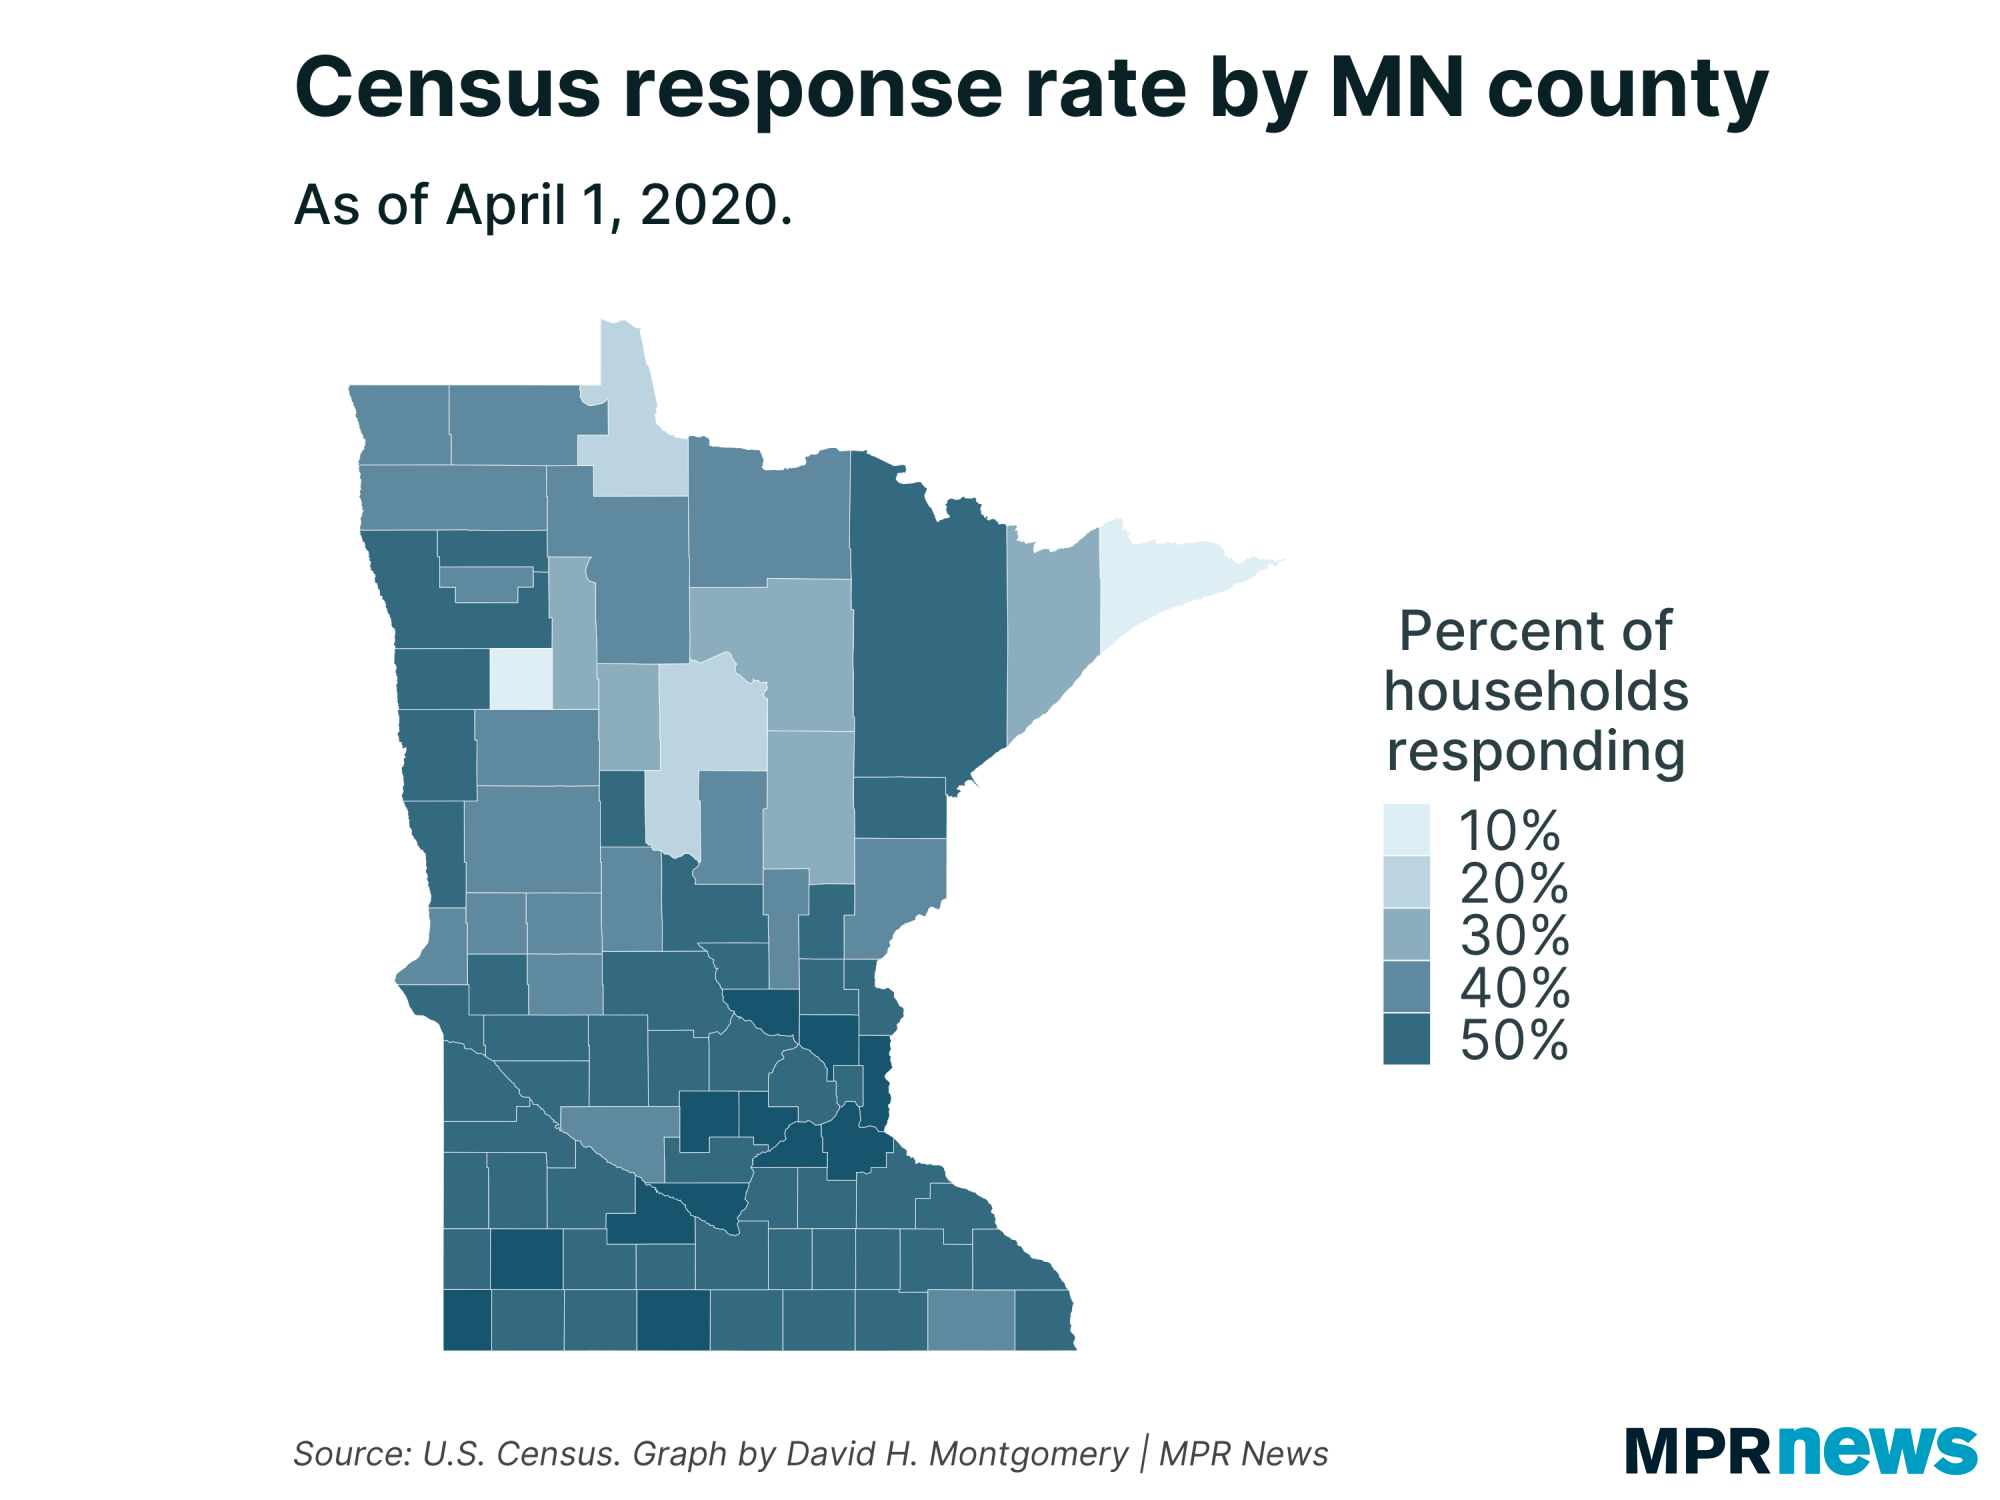 Census response rate by Minnesota county